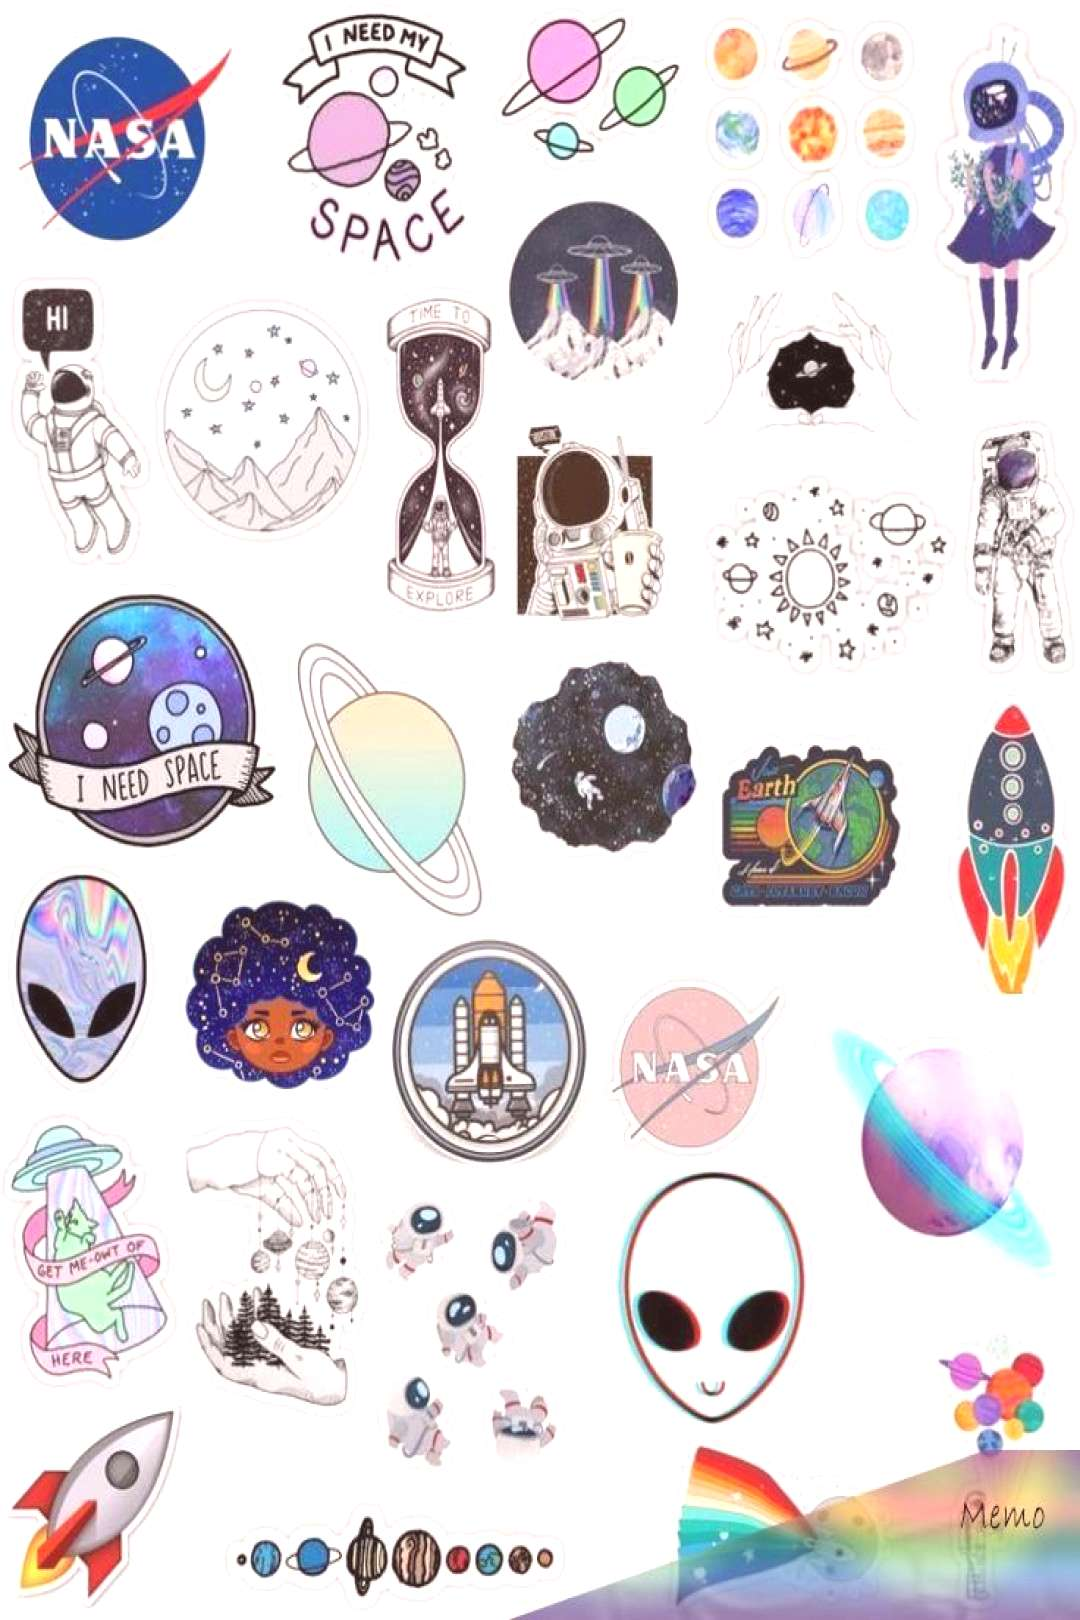 Mar 8, 2020 - Android Wallpaper – tumblr space sticker pack moon stars planets sun aliens ga